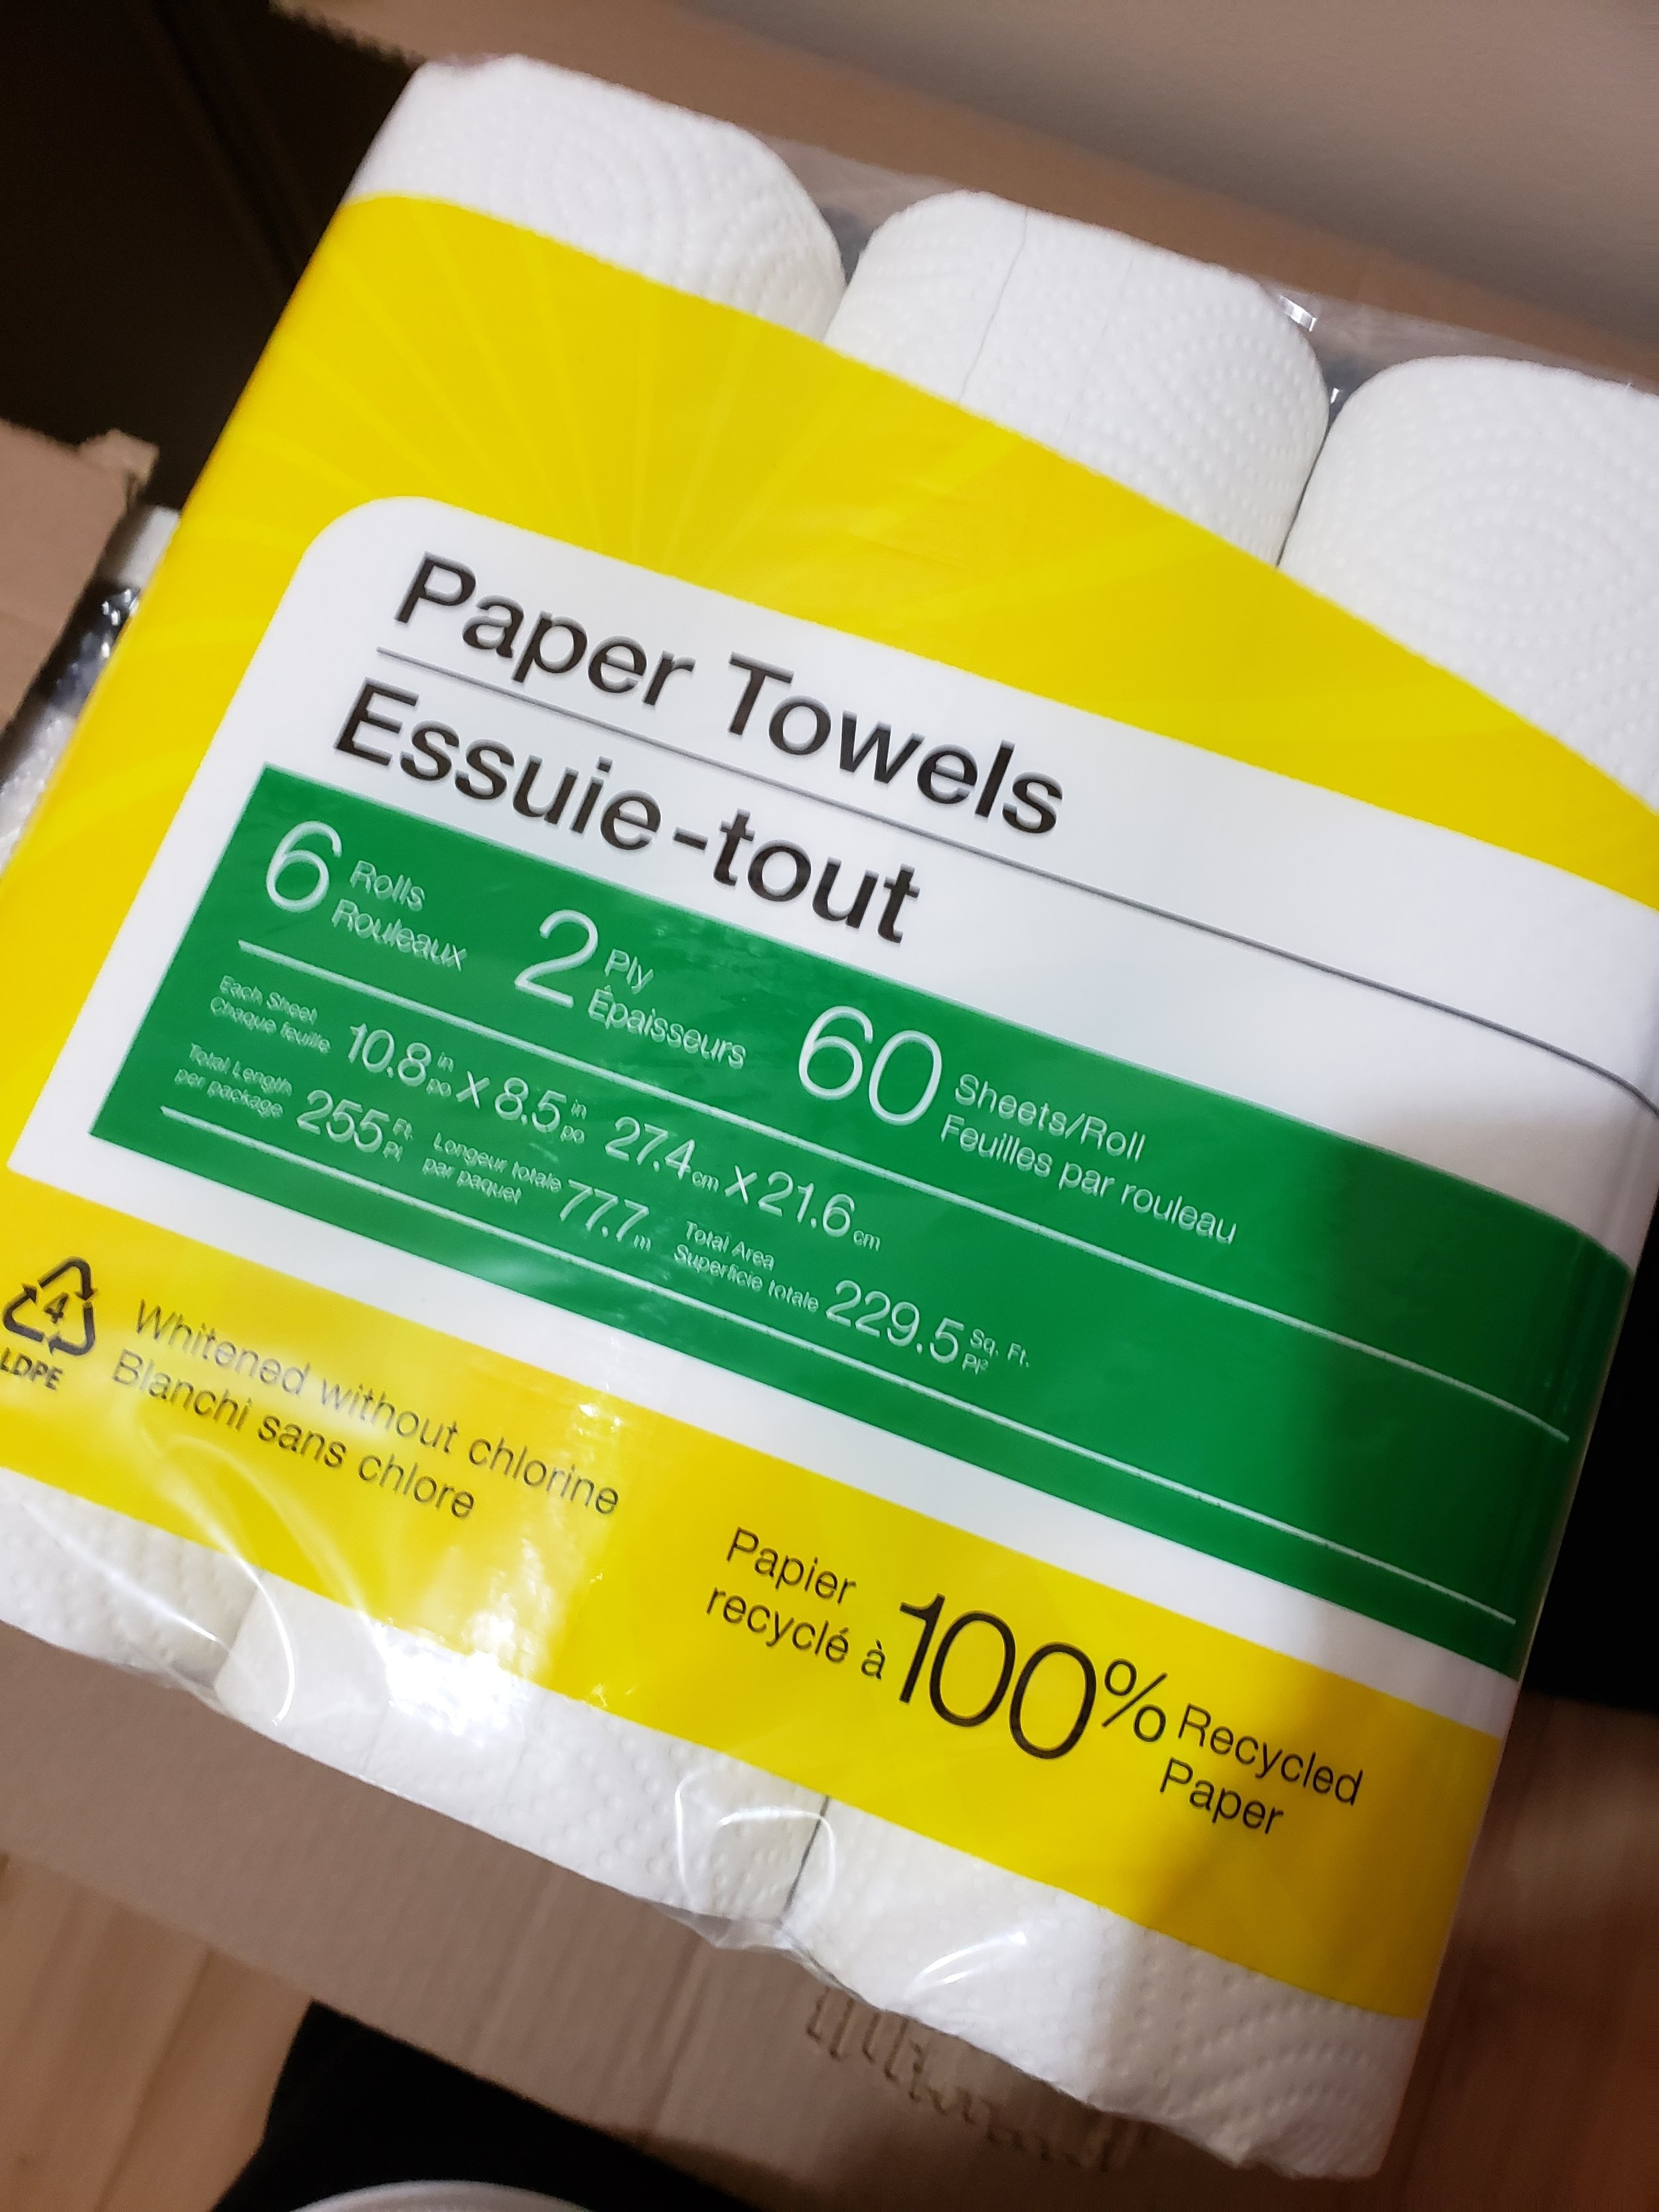 100% recycled paper towel